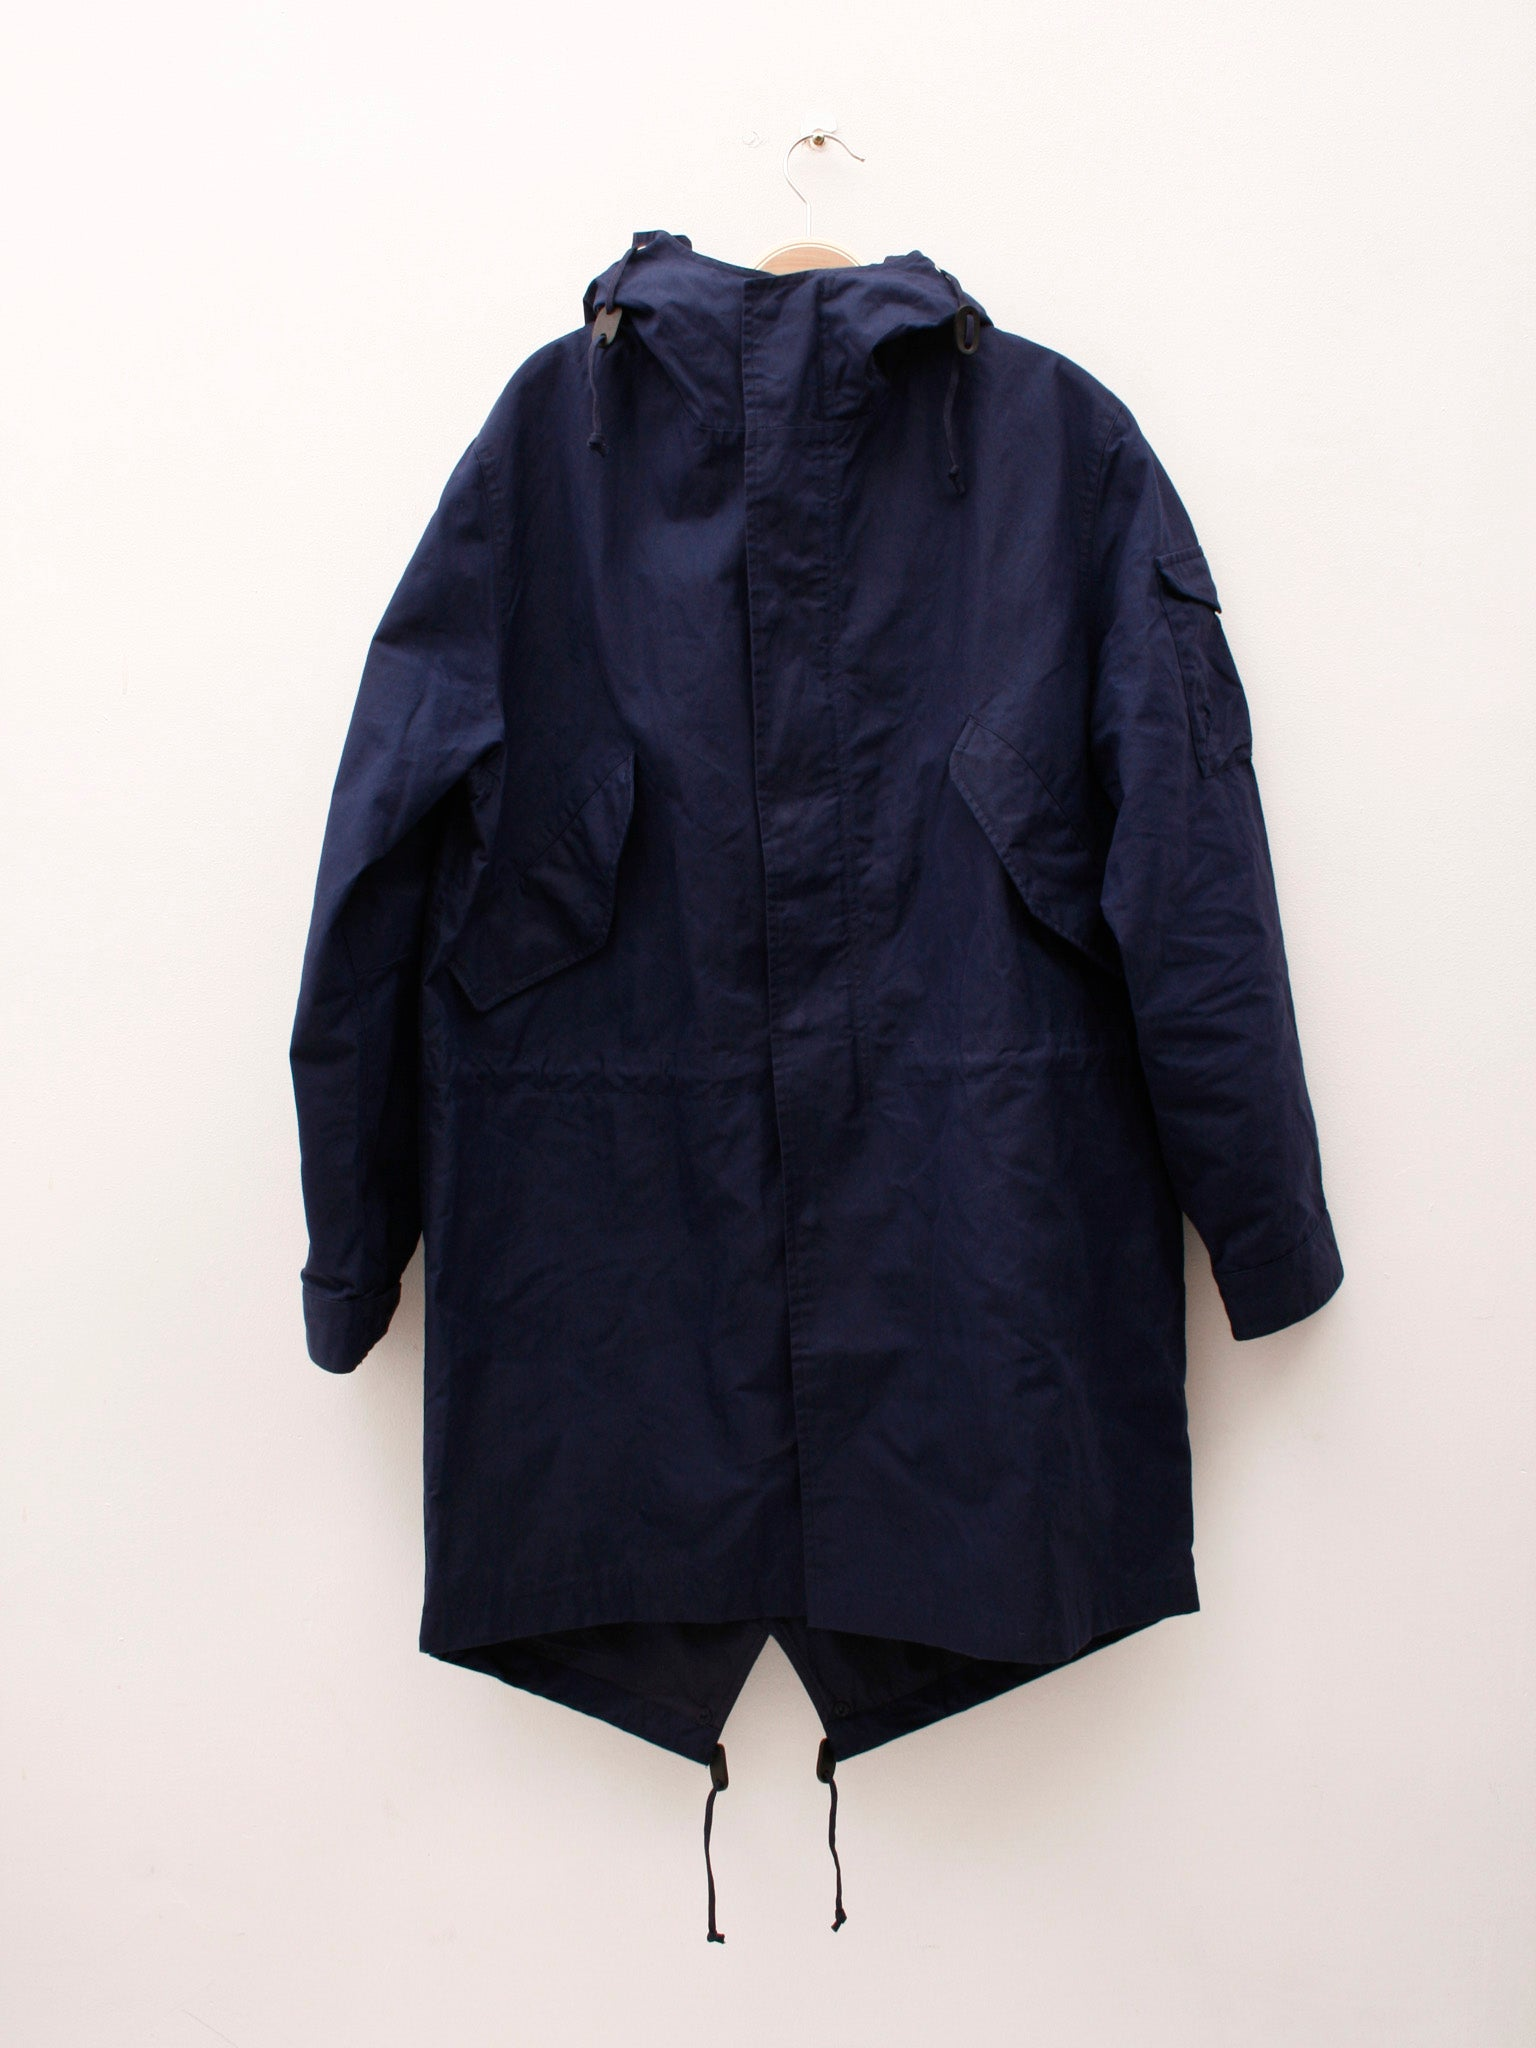 Scottish Parka, navy